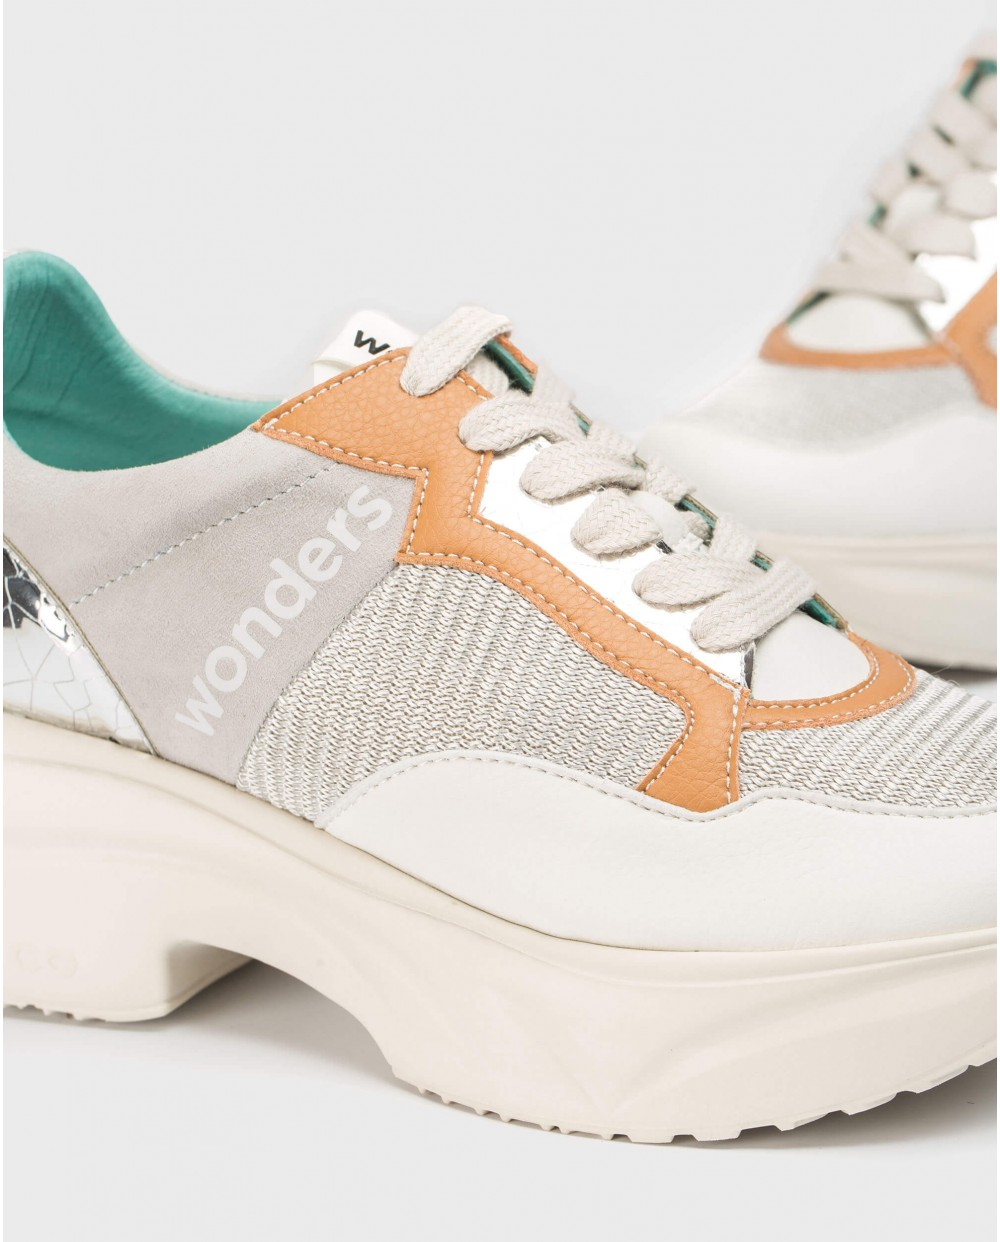 Wonders-Sneakers-Sneaker with maxi sole